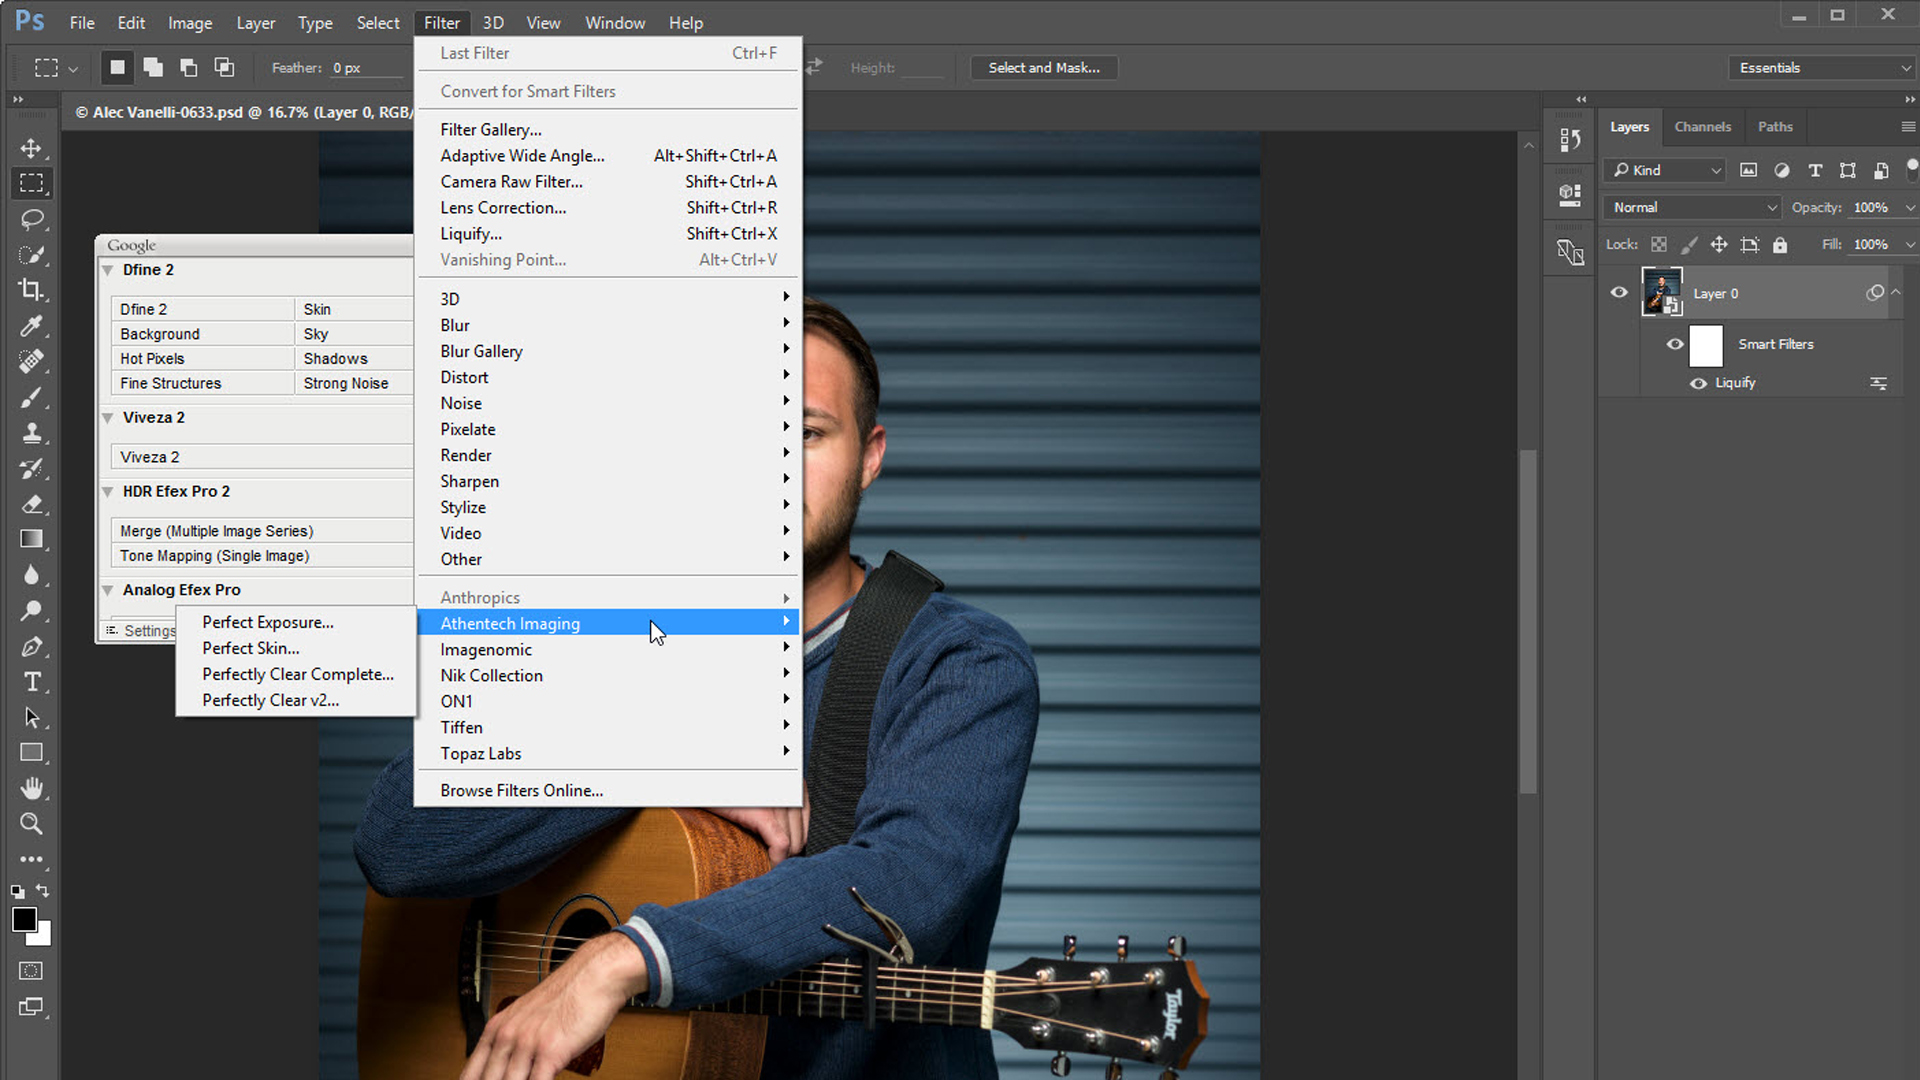 Photoshop 5 Solution Photoshop 2015 5 Missing Plugins Photofocus